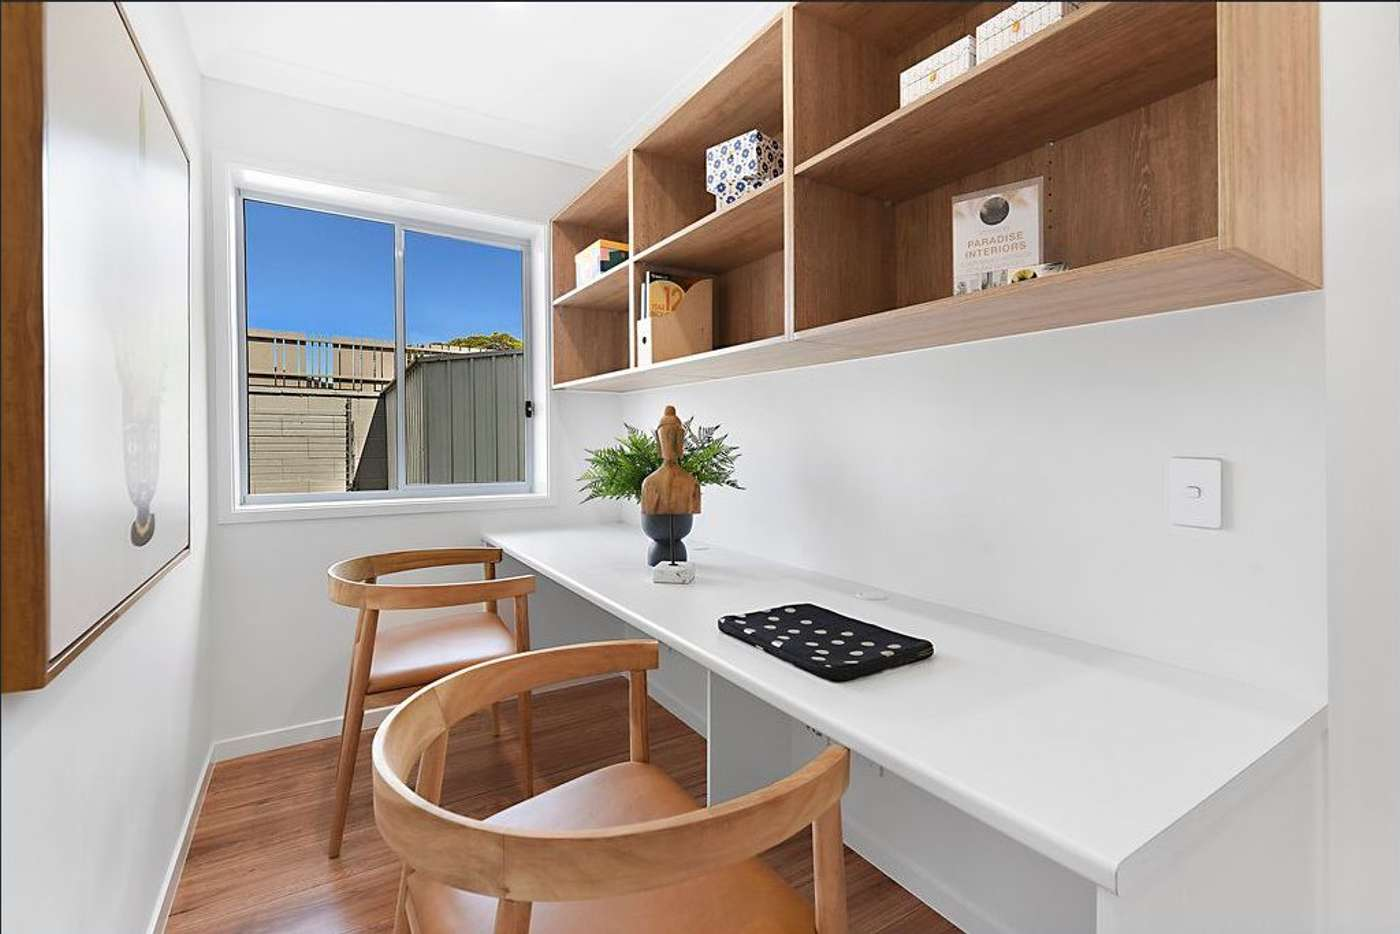 Fifth view of Homely house listing, 33 Mungera Street, Runaway Bay QLD 4216